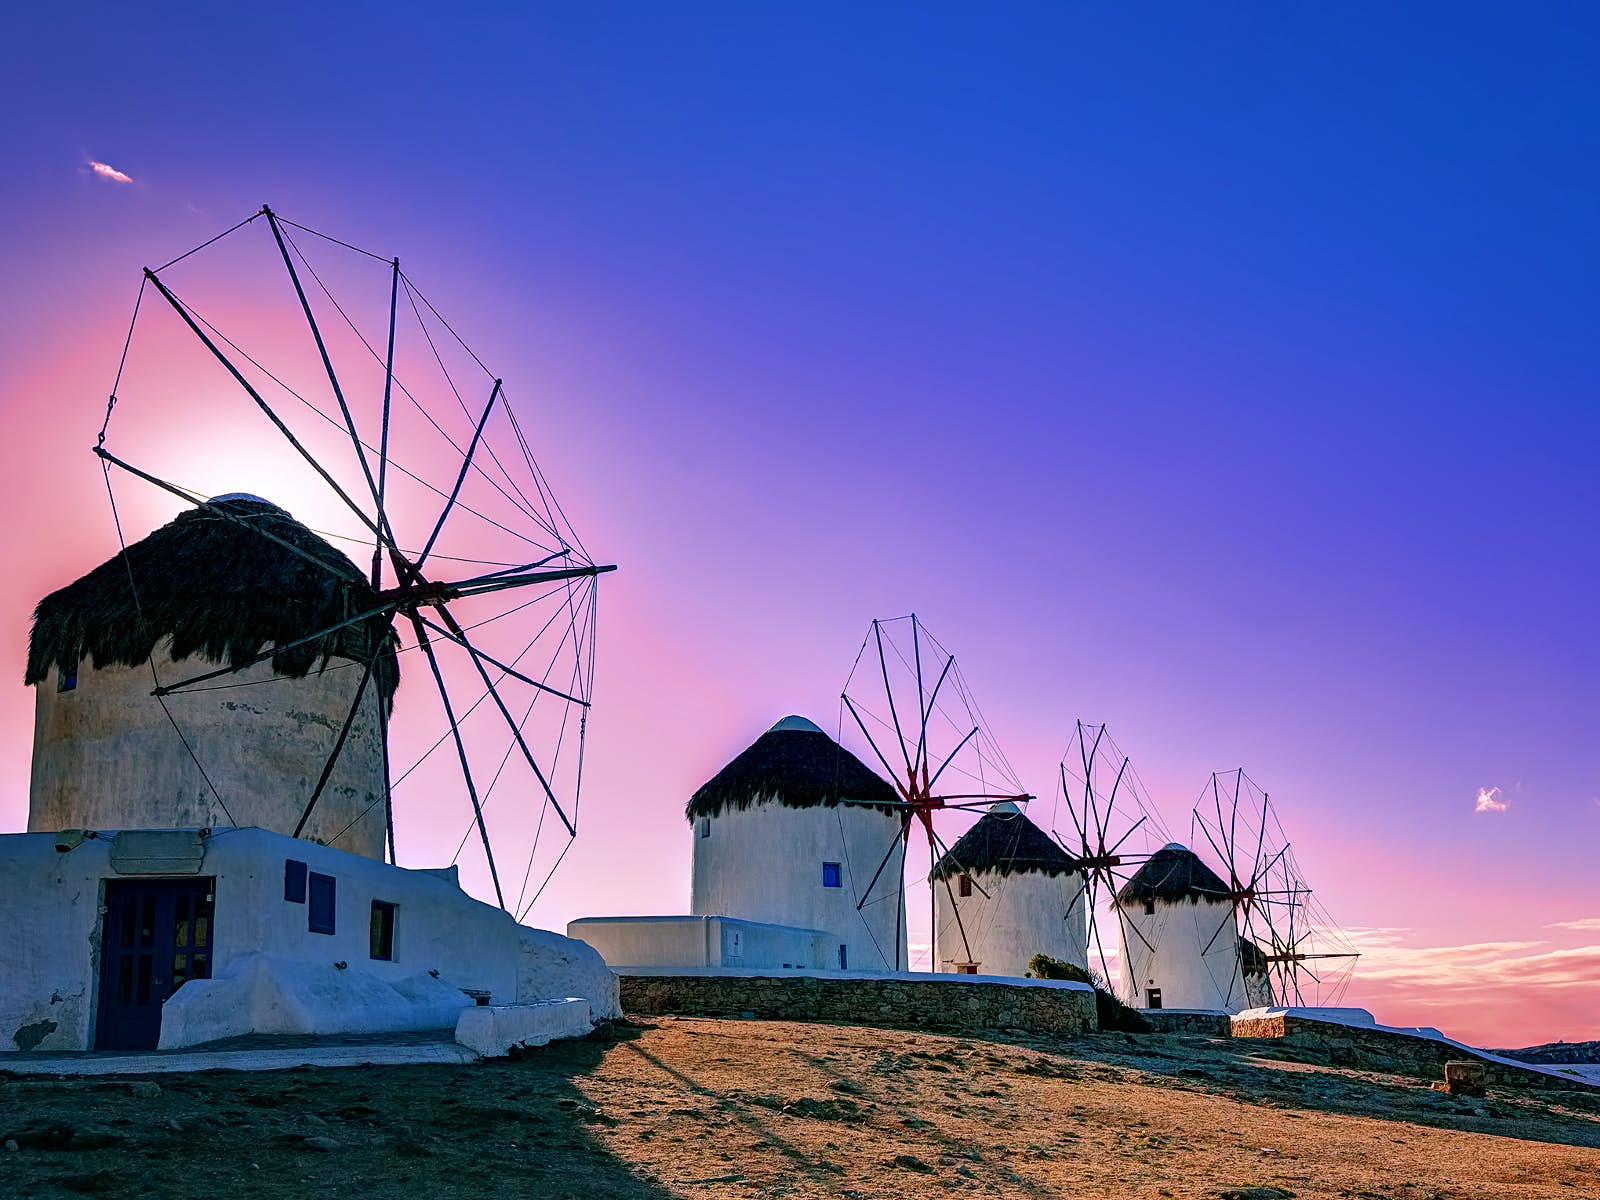 A photo of four short, white round windmills on a small sandy hill. The windmills have thatched roofs and wooden spokes and they are backlit by a stunning pink and purple sunset.